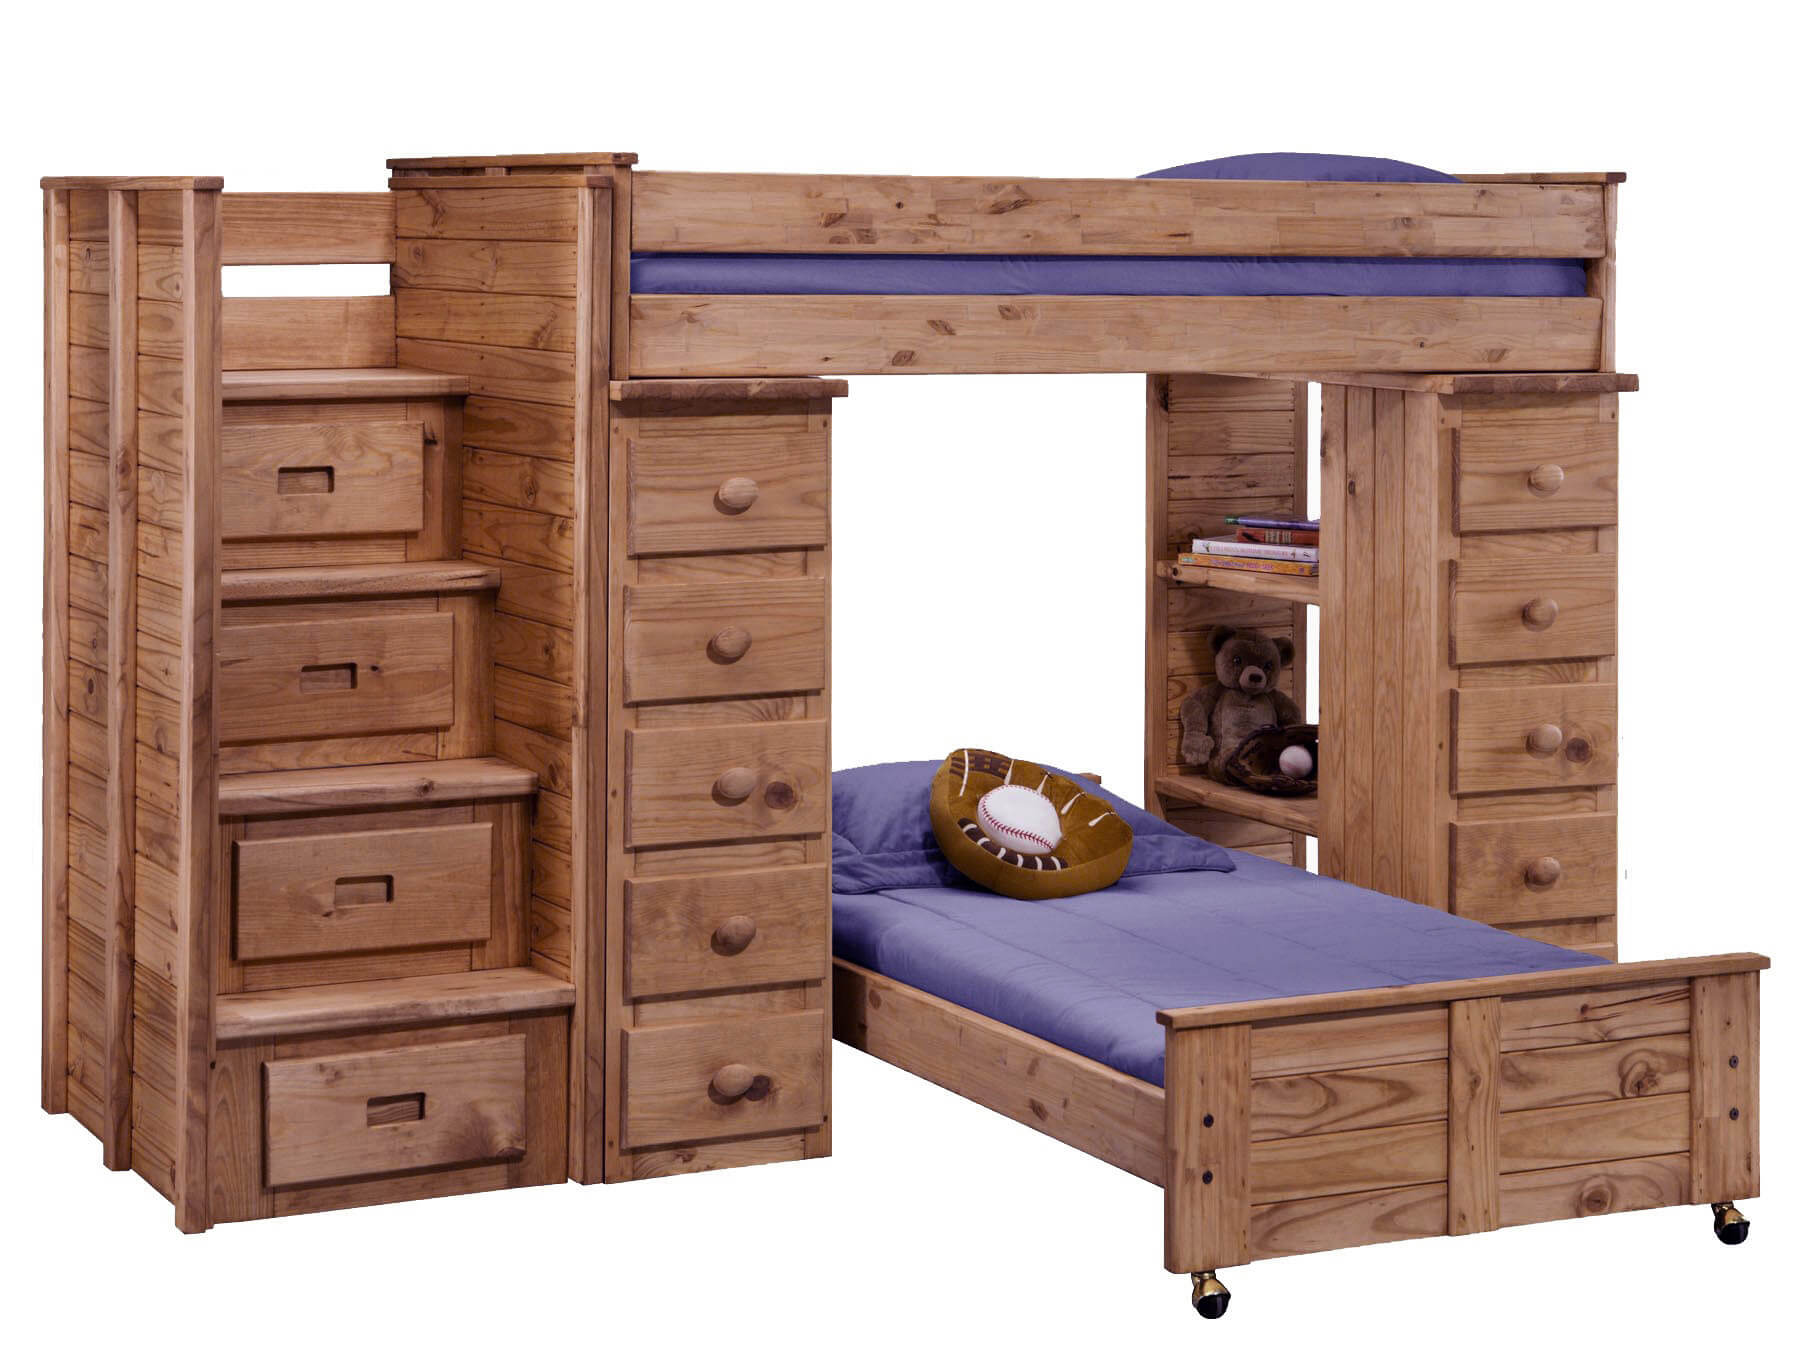 This is quite the unit, being longer than others due to accommodated a staircase (with storage drawers) and drawers on both sides of the lower bed. The lower bed is on wheels and is not attached or used as support for the upper bed, so you can move the lower bed away from the unit.